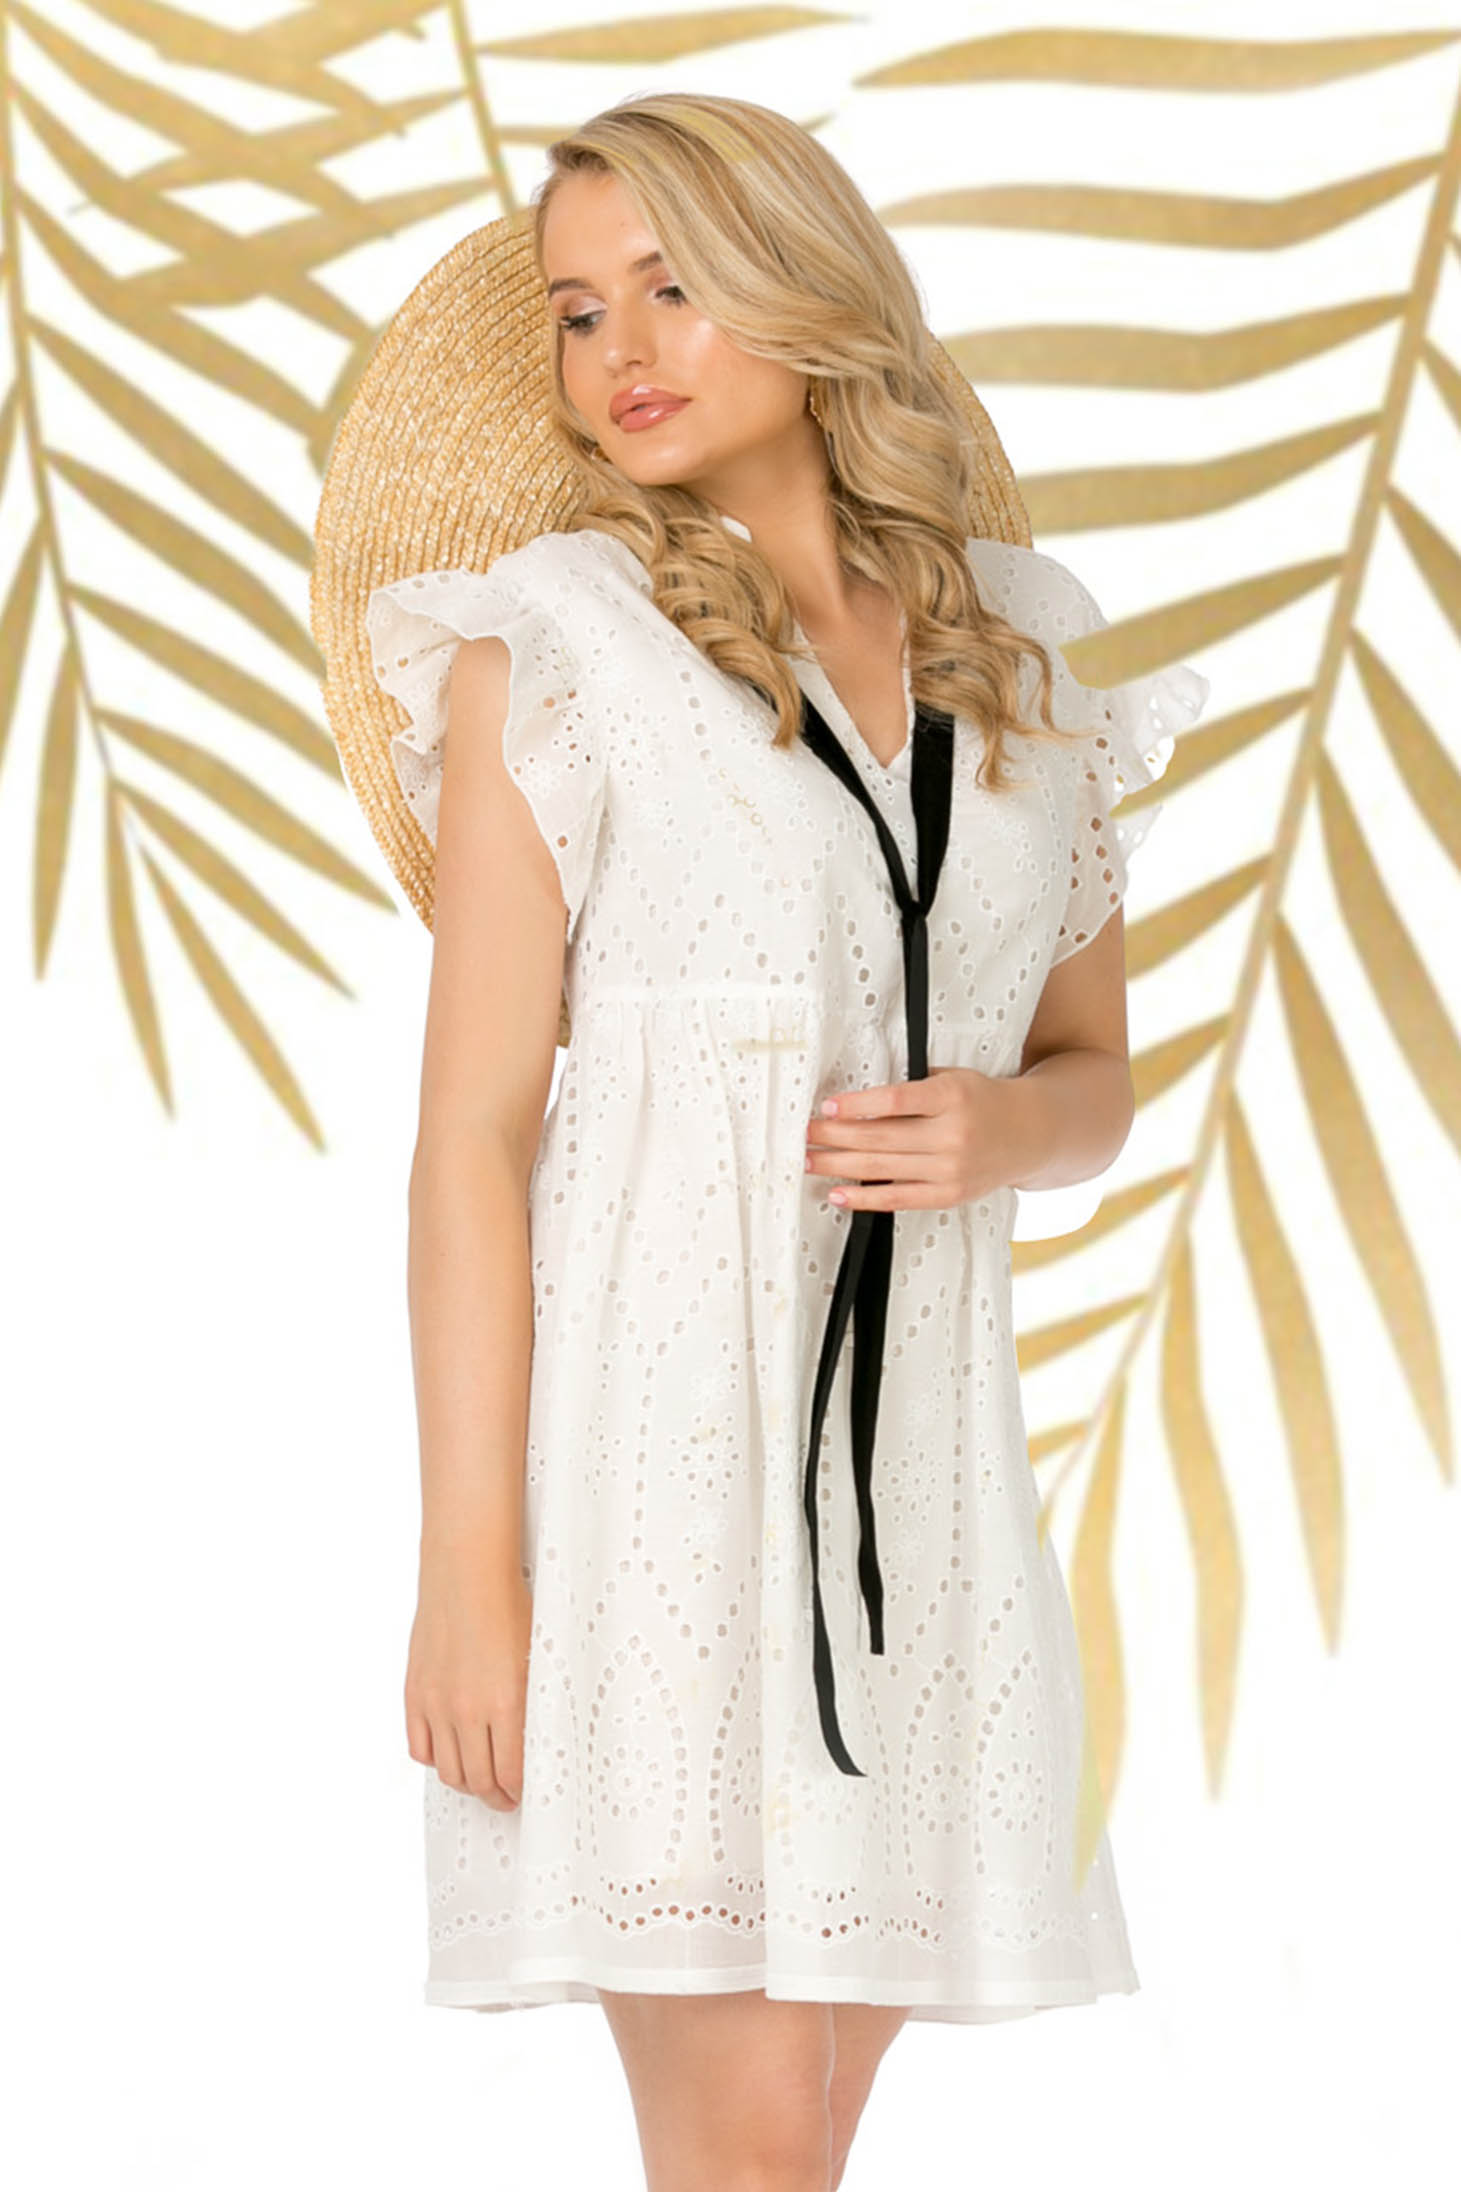 White dress short cut daily guipure with ruffled sleeves flared